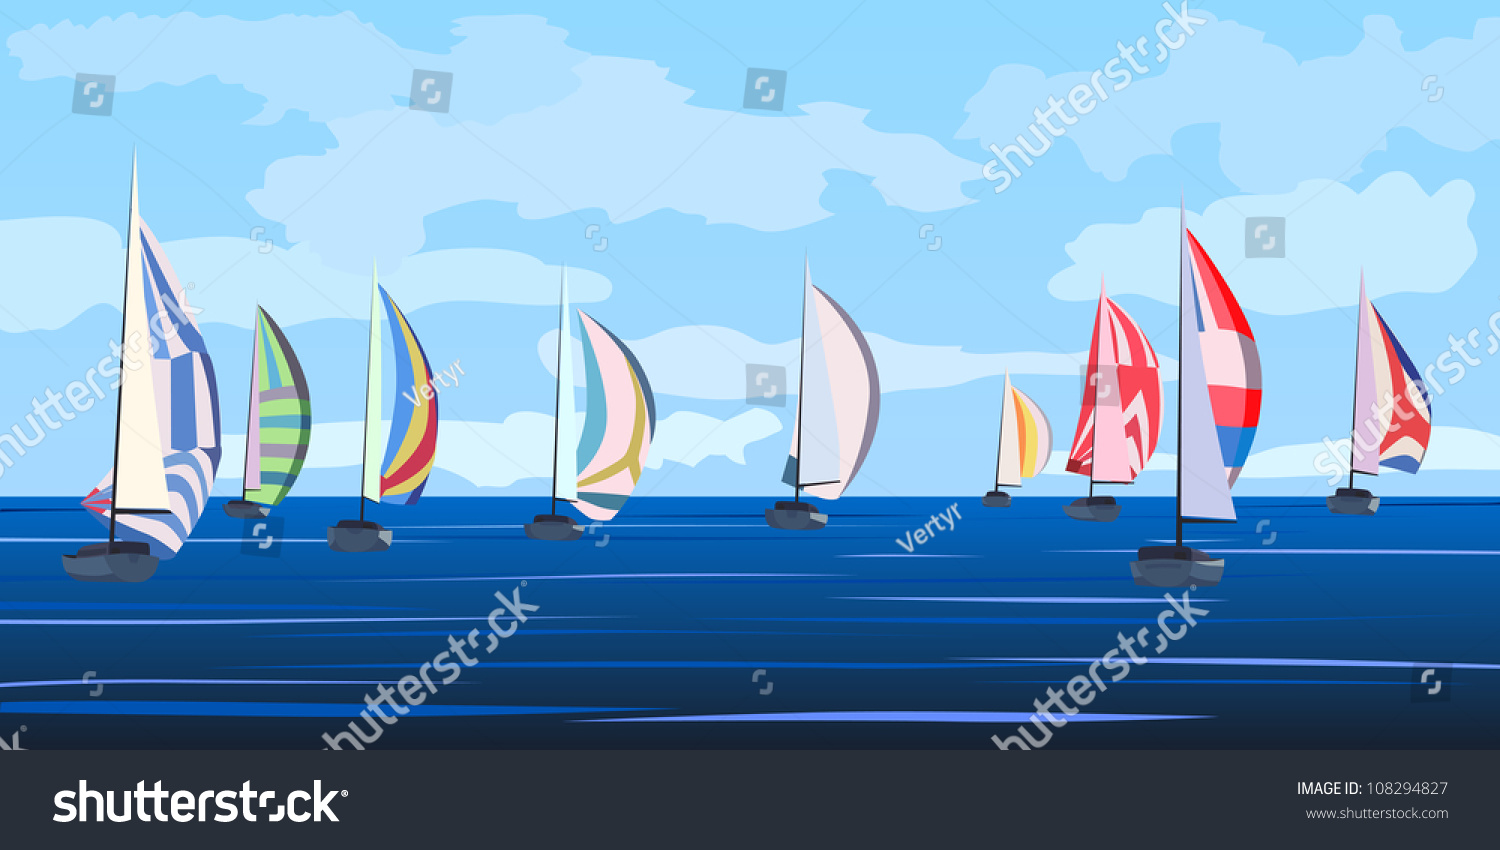 ... Clipart sailboat race stock vectors & vector clip art shutterstock